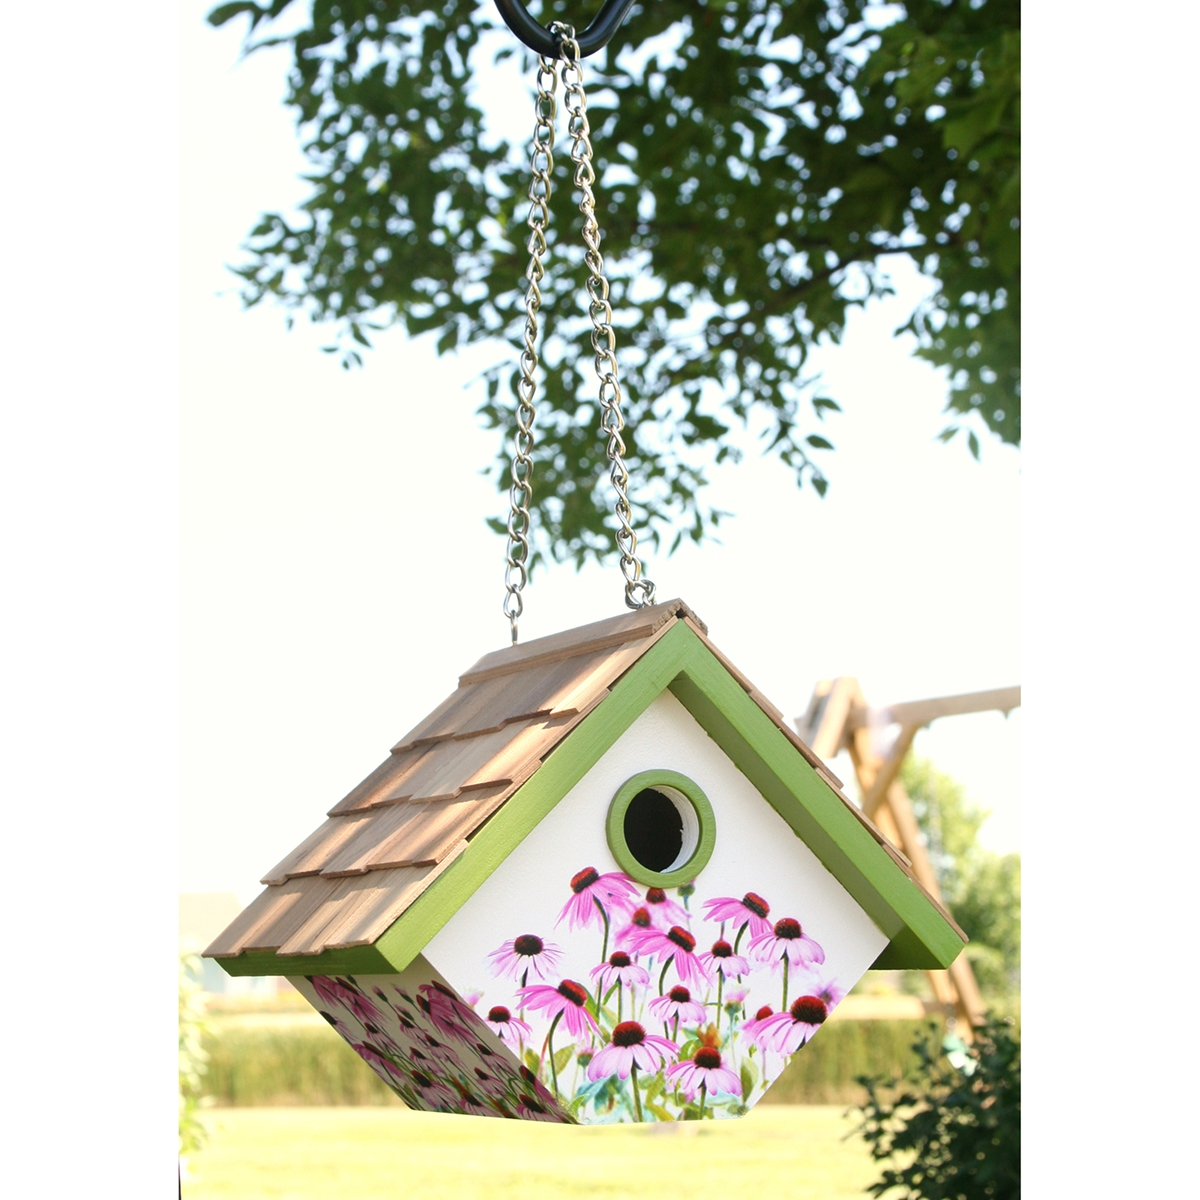 Coneflower Wren Nesting Box